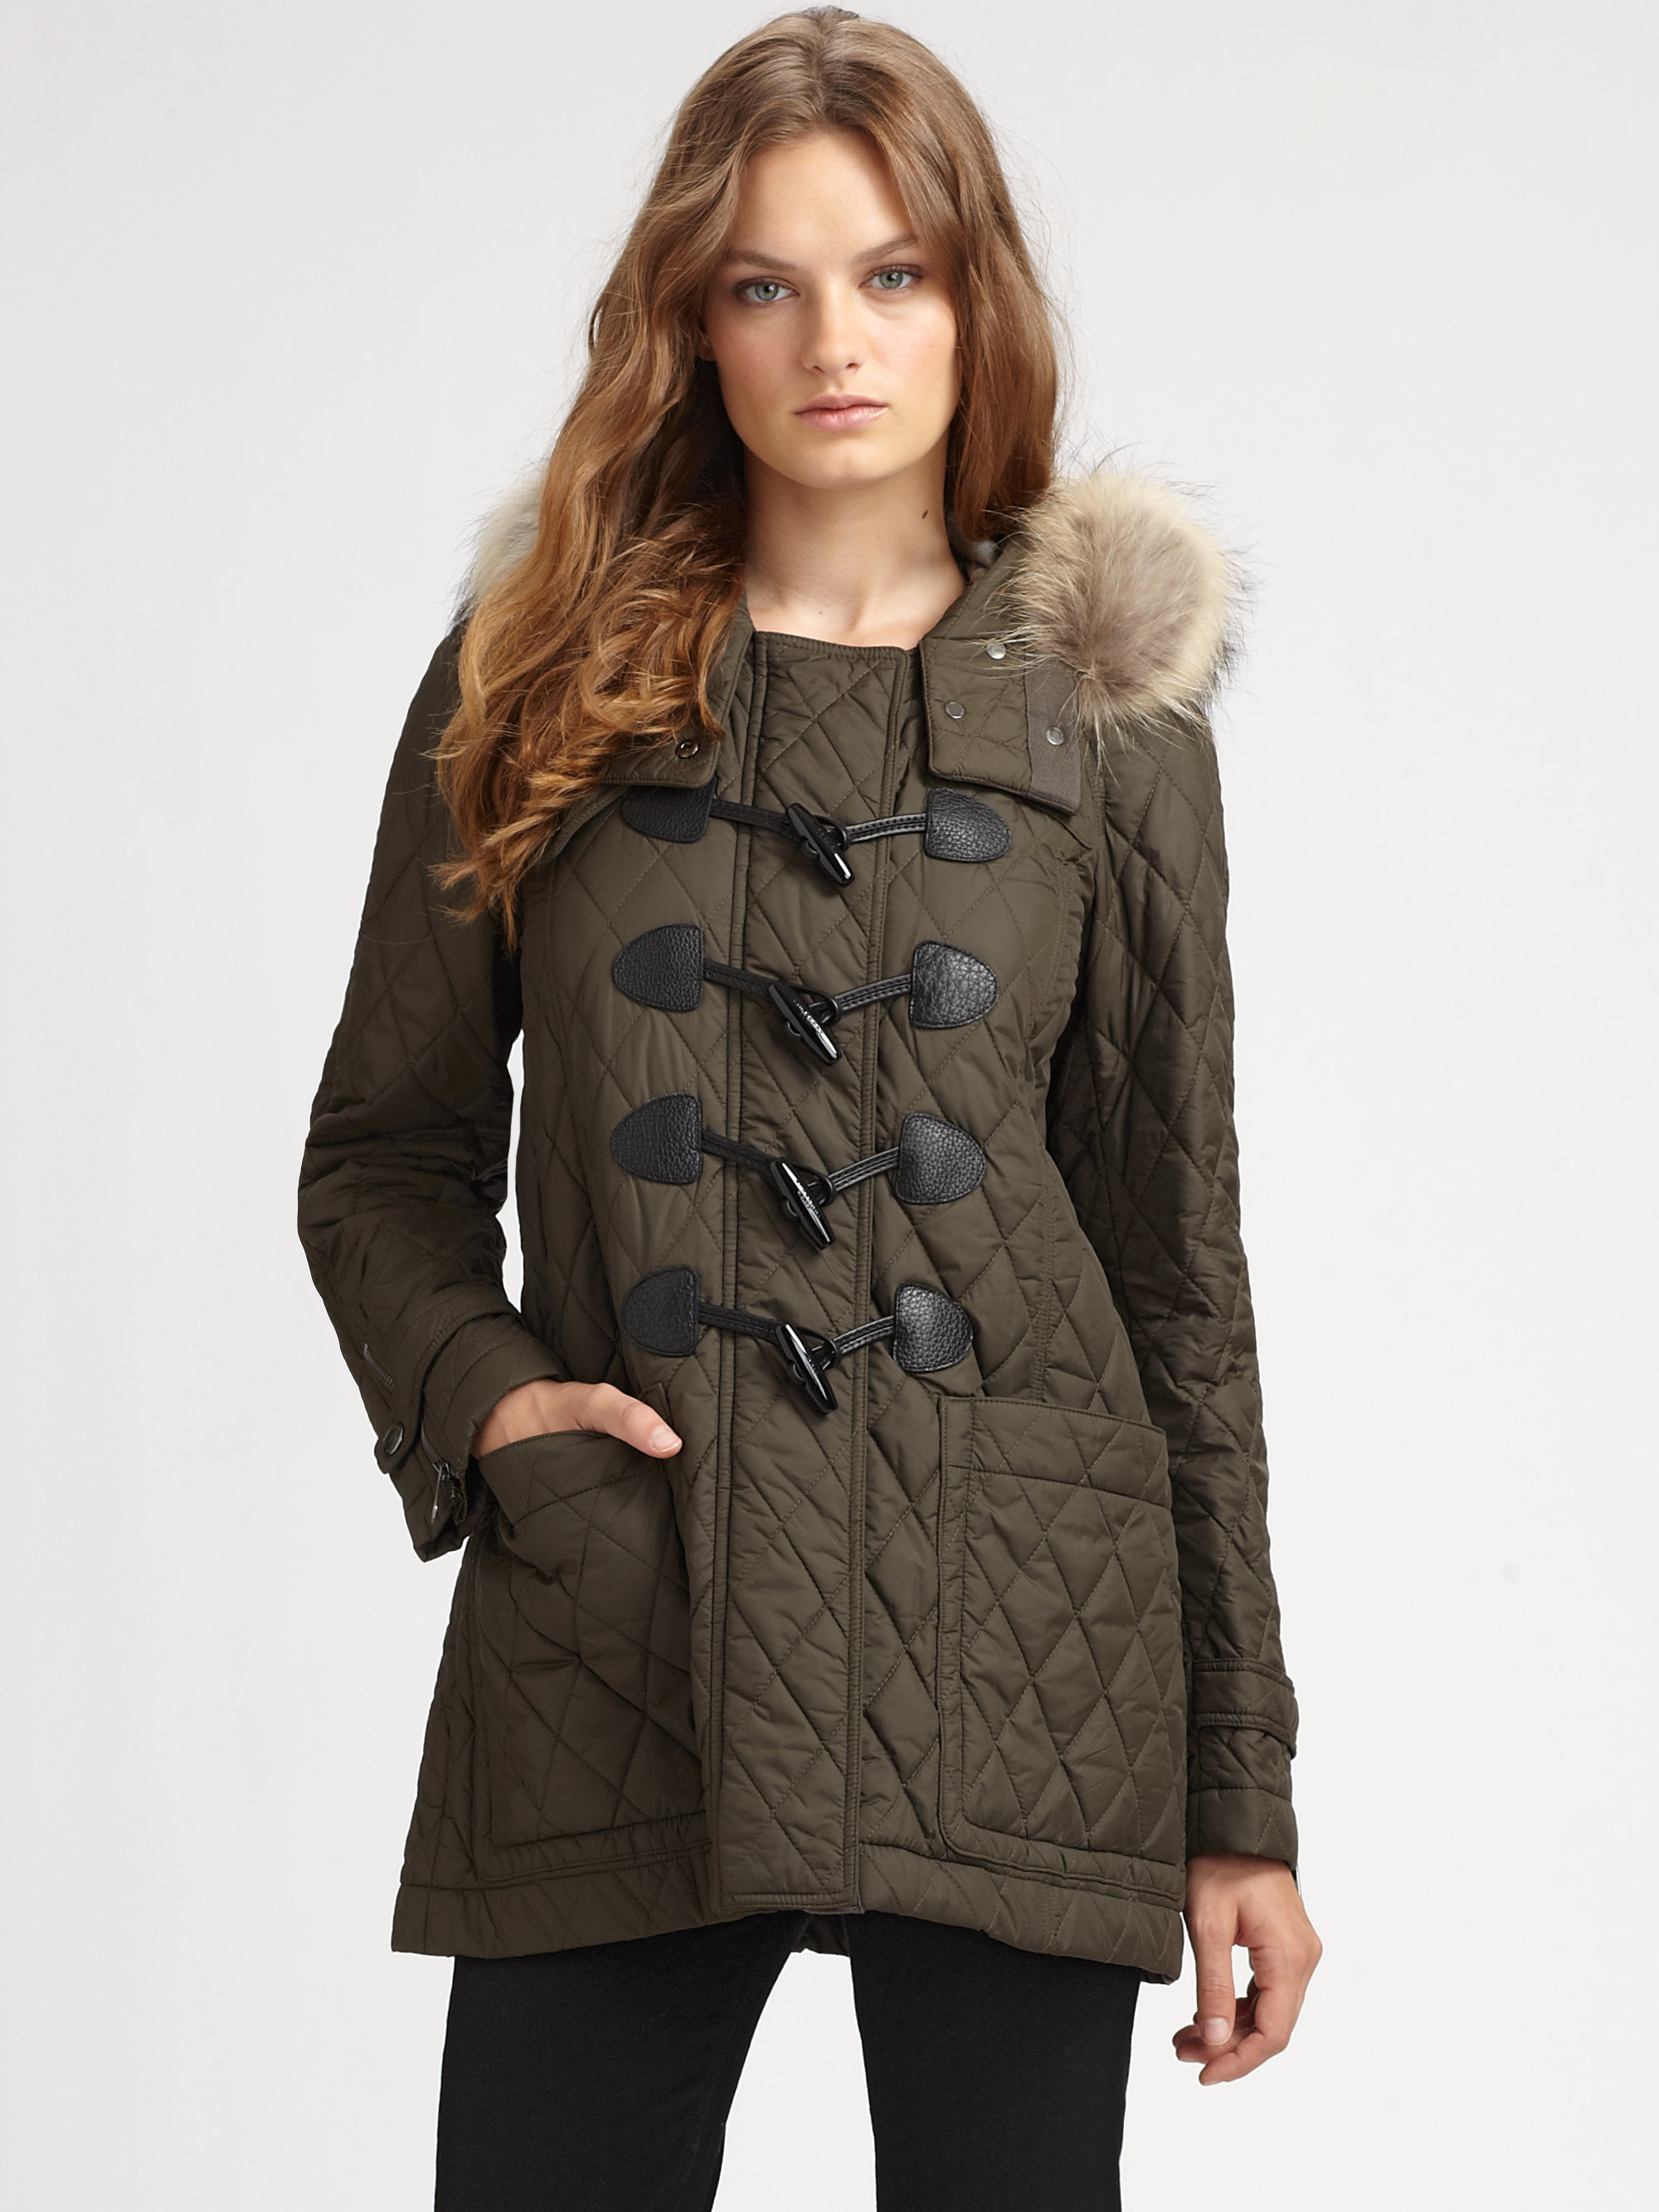 Burberry brit Fur-trimmed Quilted Duffle Coat in Brown | Lyst